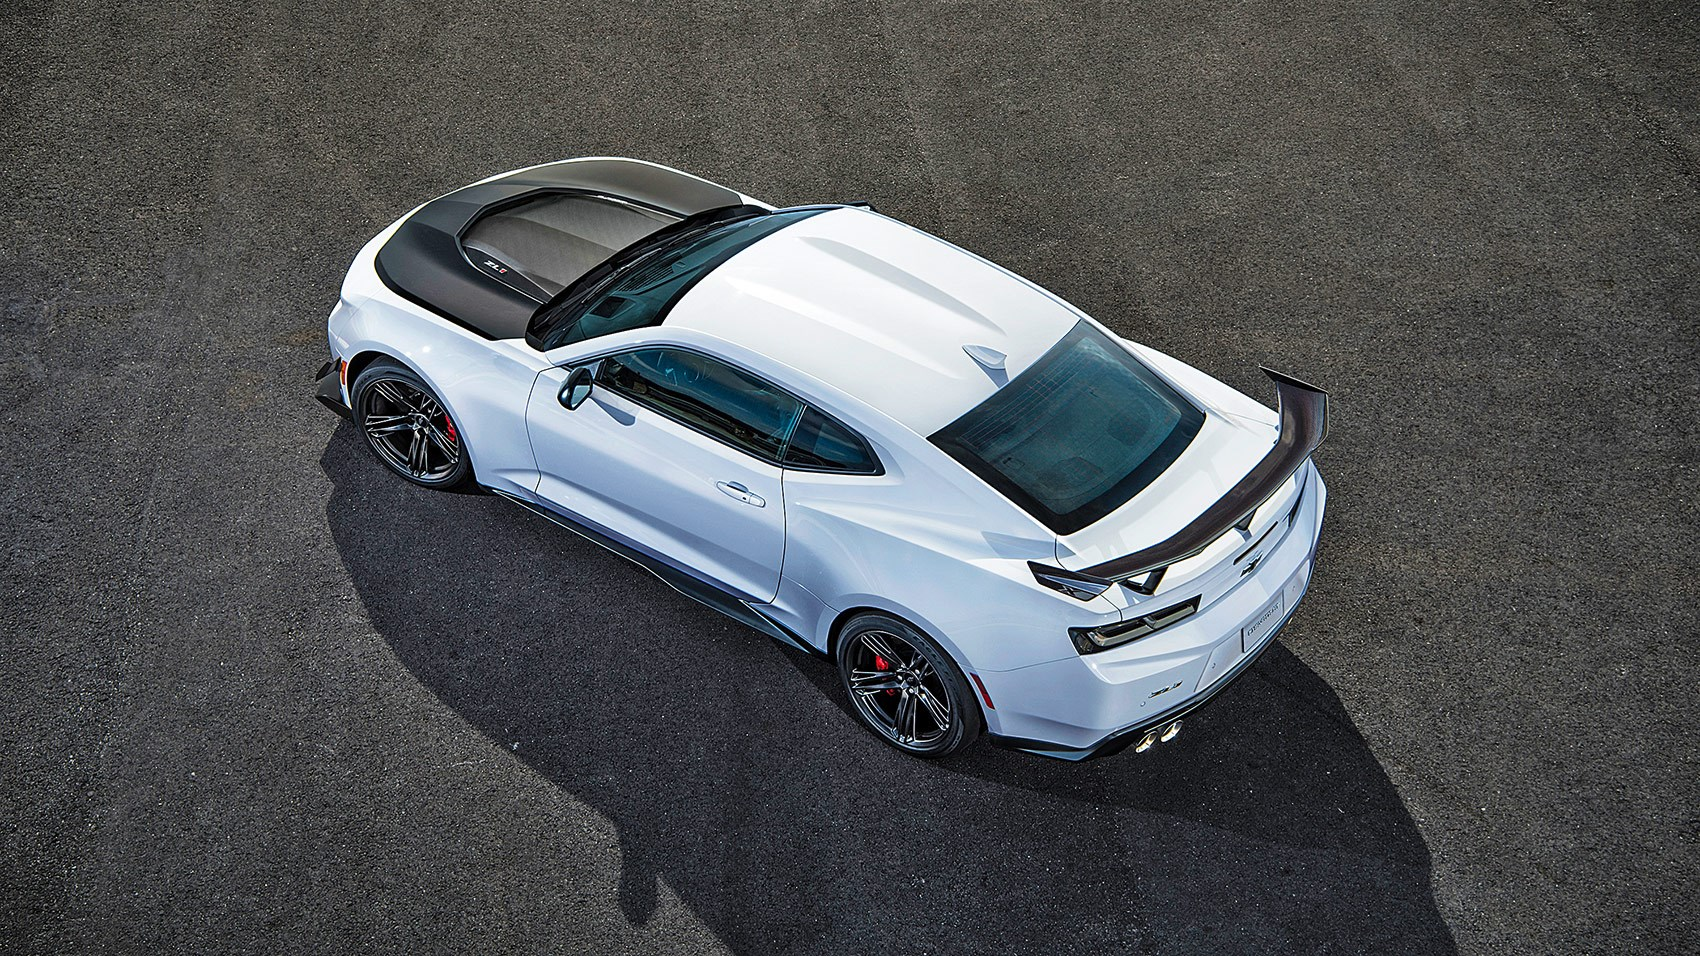 Chevrolet Camaro Zl1 1le Review Specs Price Car Magazine